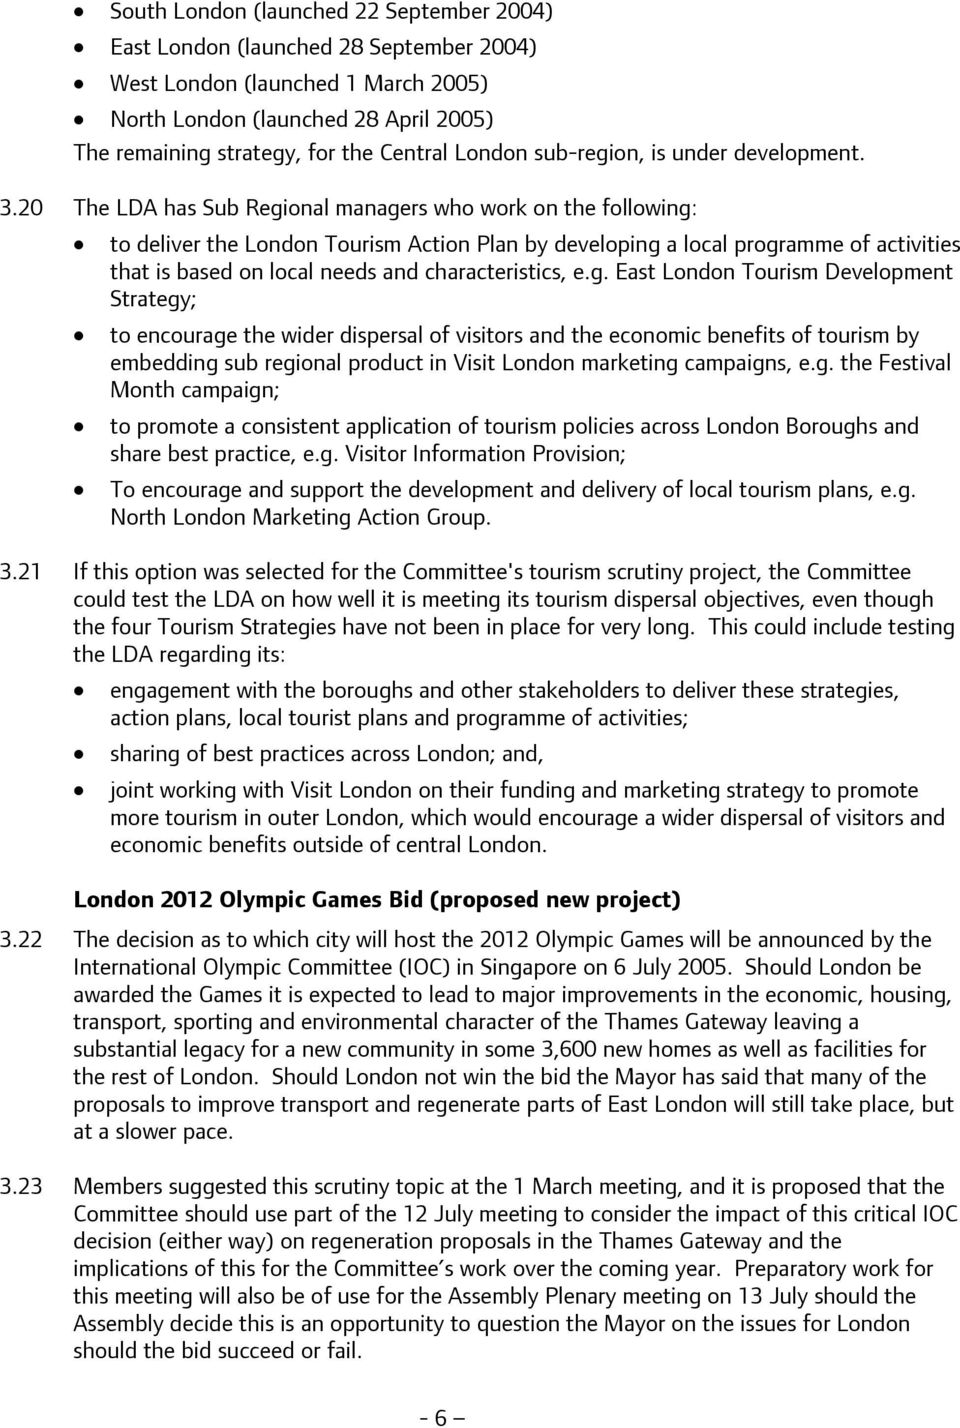 20 The LDA has Sub Regional managers who work on the following: to deliver the London Tourism Action Plan by developing a local programme of activities that is based on local needs and